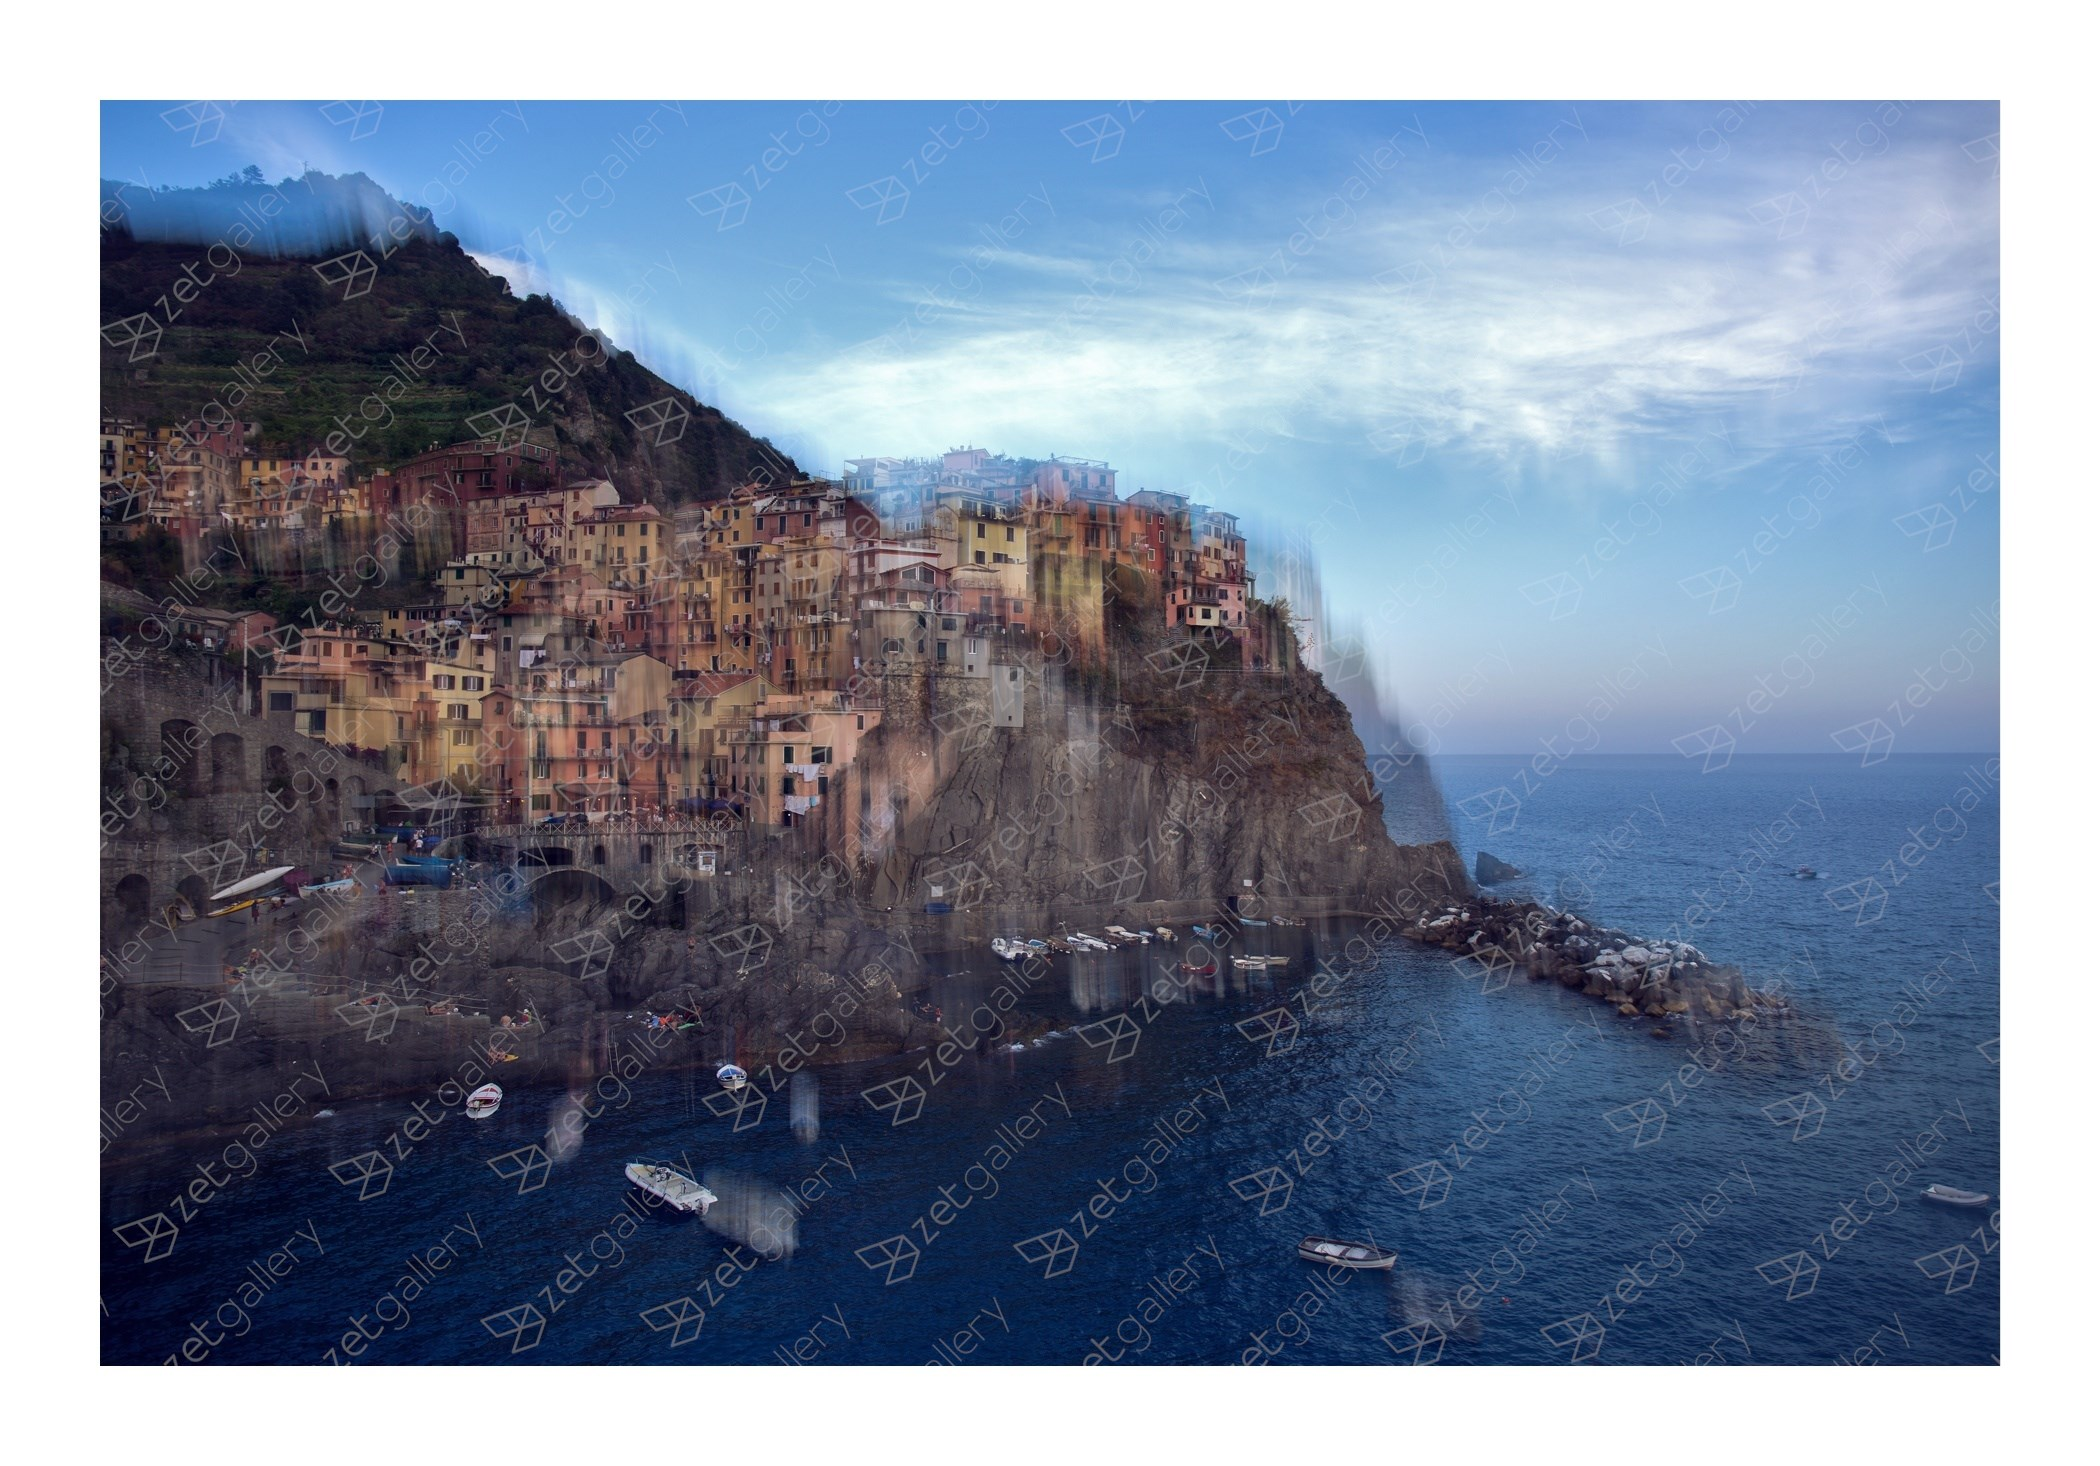 Manarola, original Landscape Digital Photography by Daniel Camacho